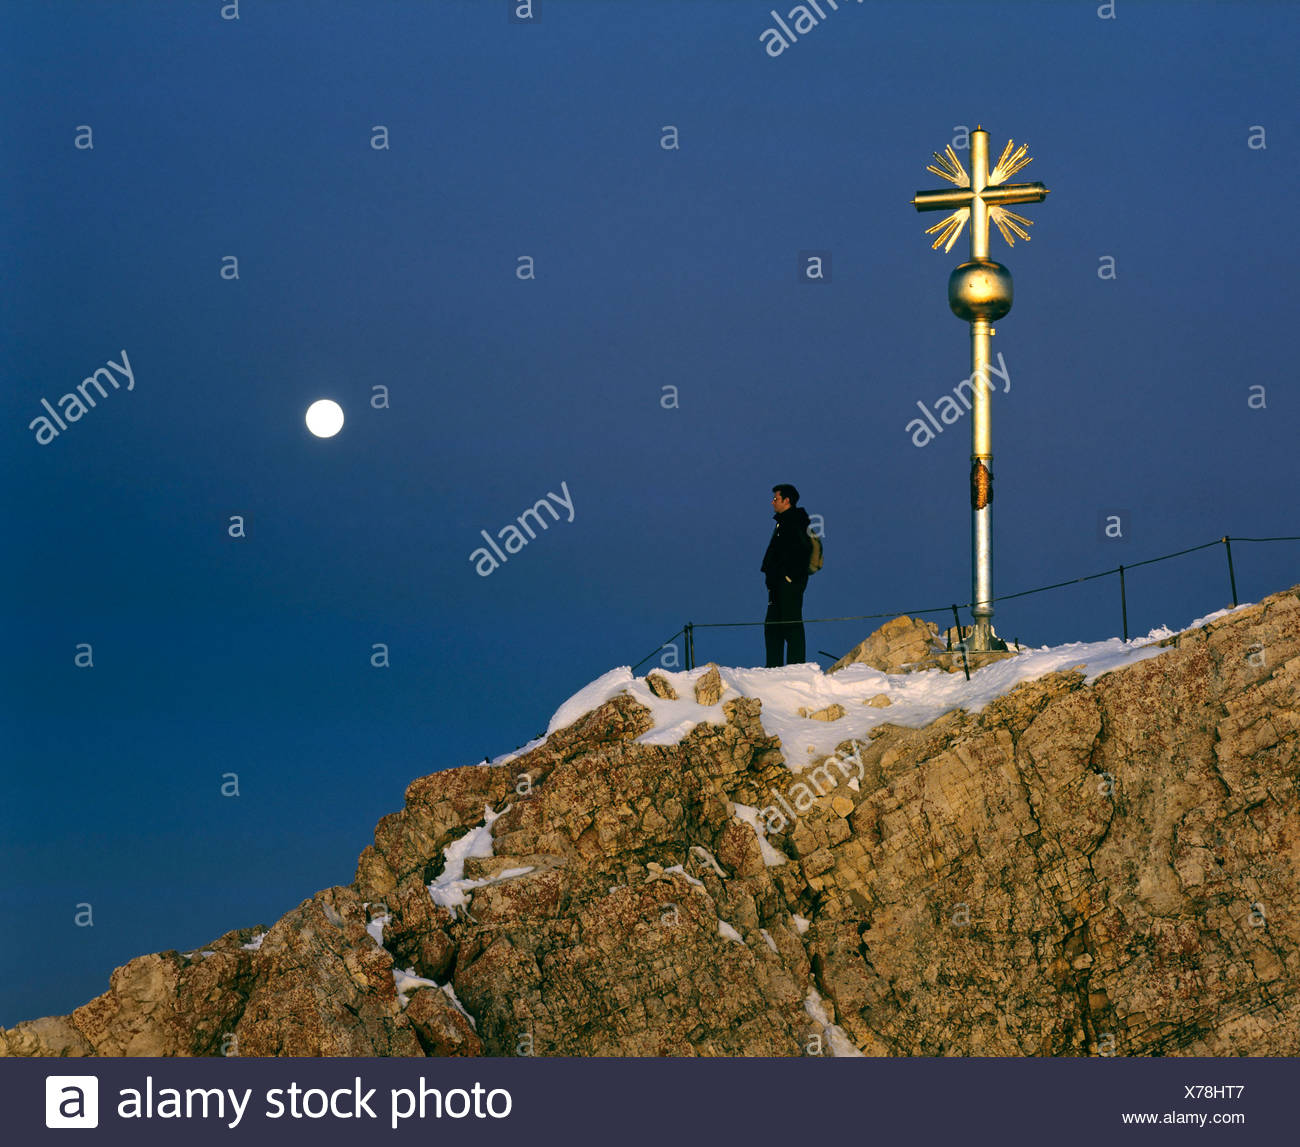 Summit cross at 2962 m or 9718 ft on the Zugspitze, Germany's highest mountain, at dusk, Wetterstein Range, Werdenfels Region,  - Stock Image